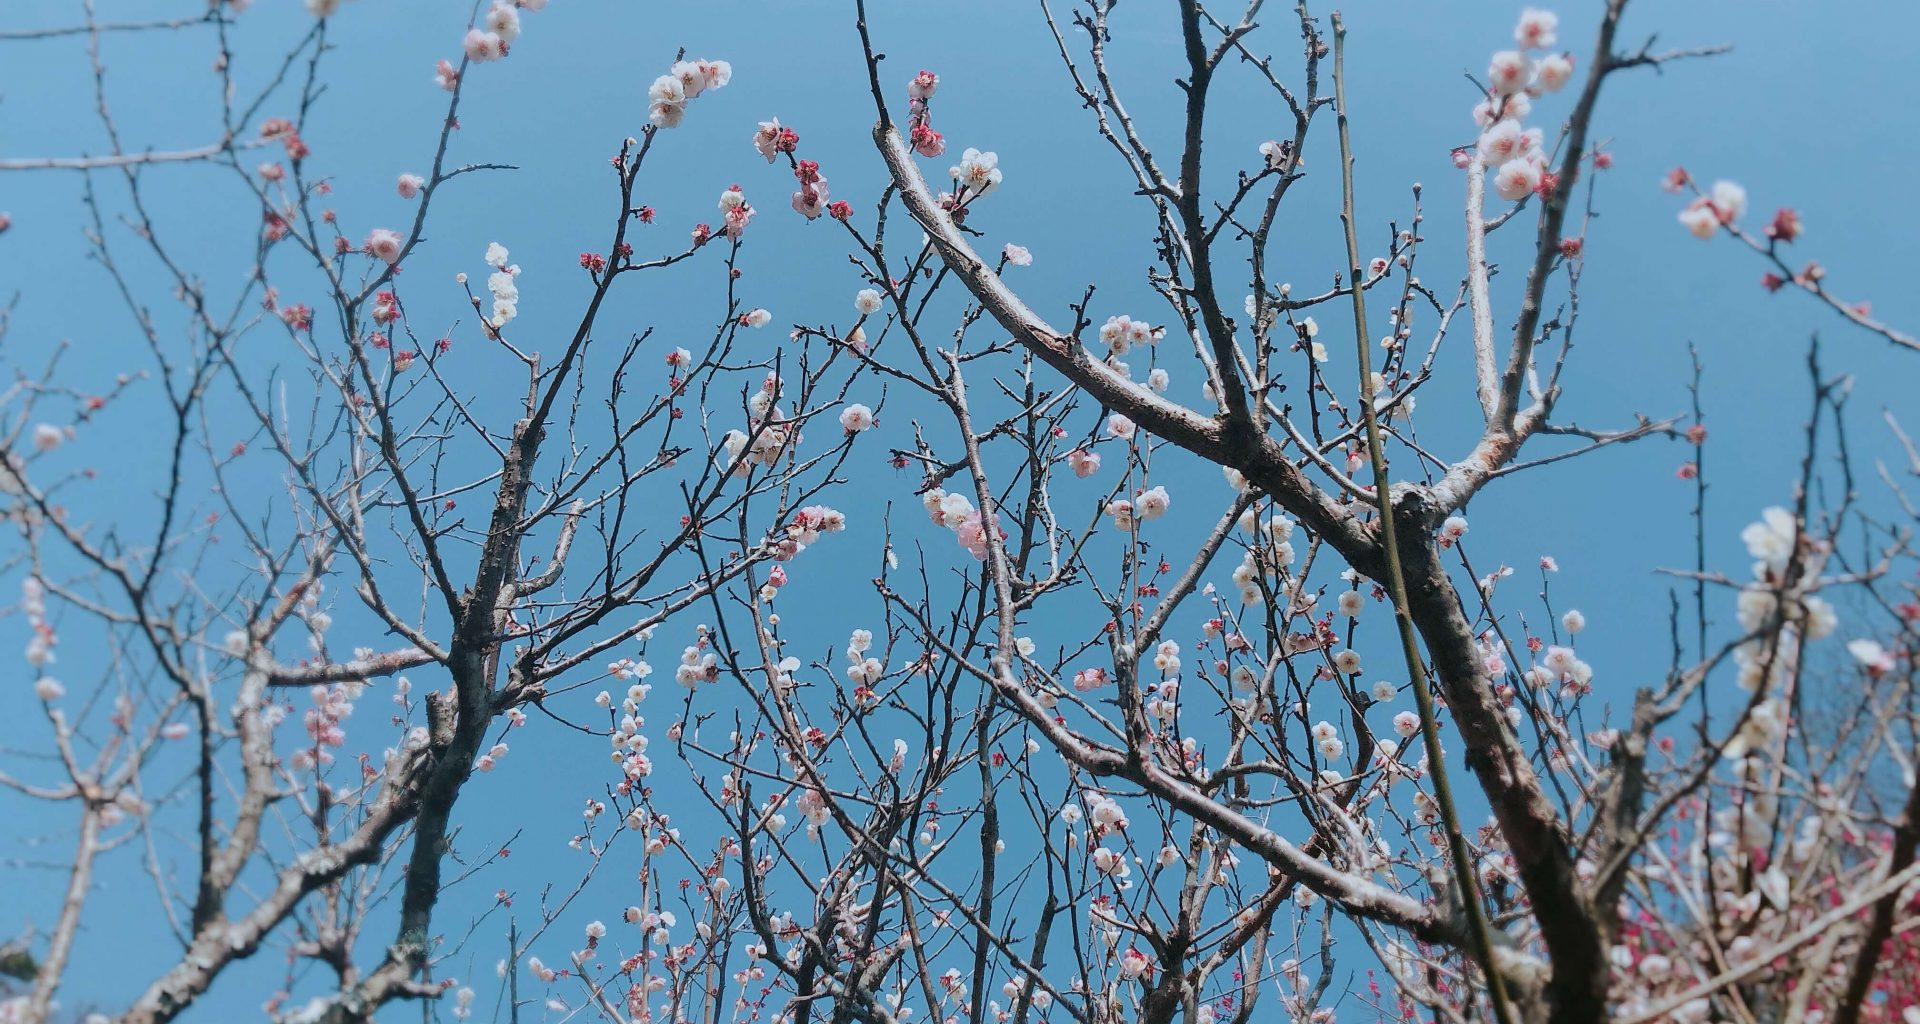 Another plum blossom shot with blue sky